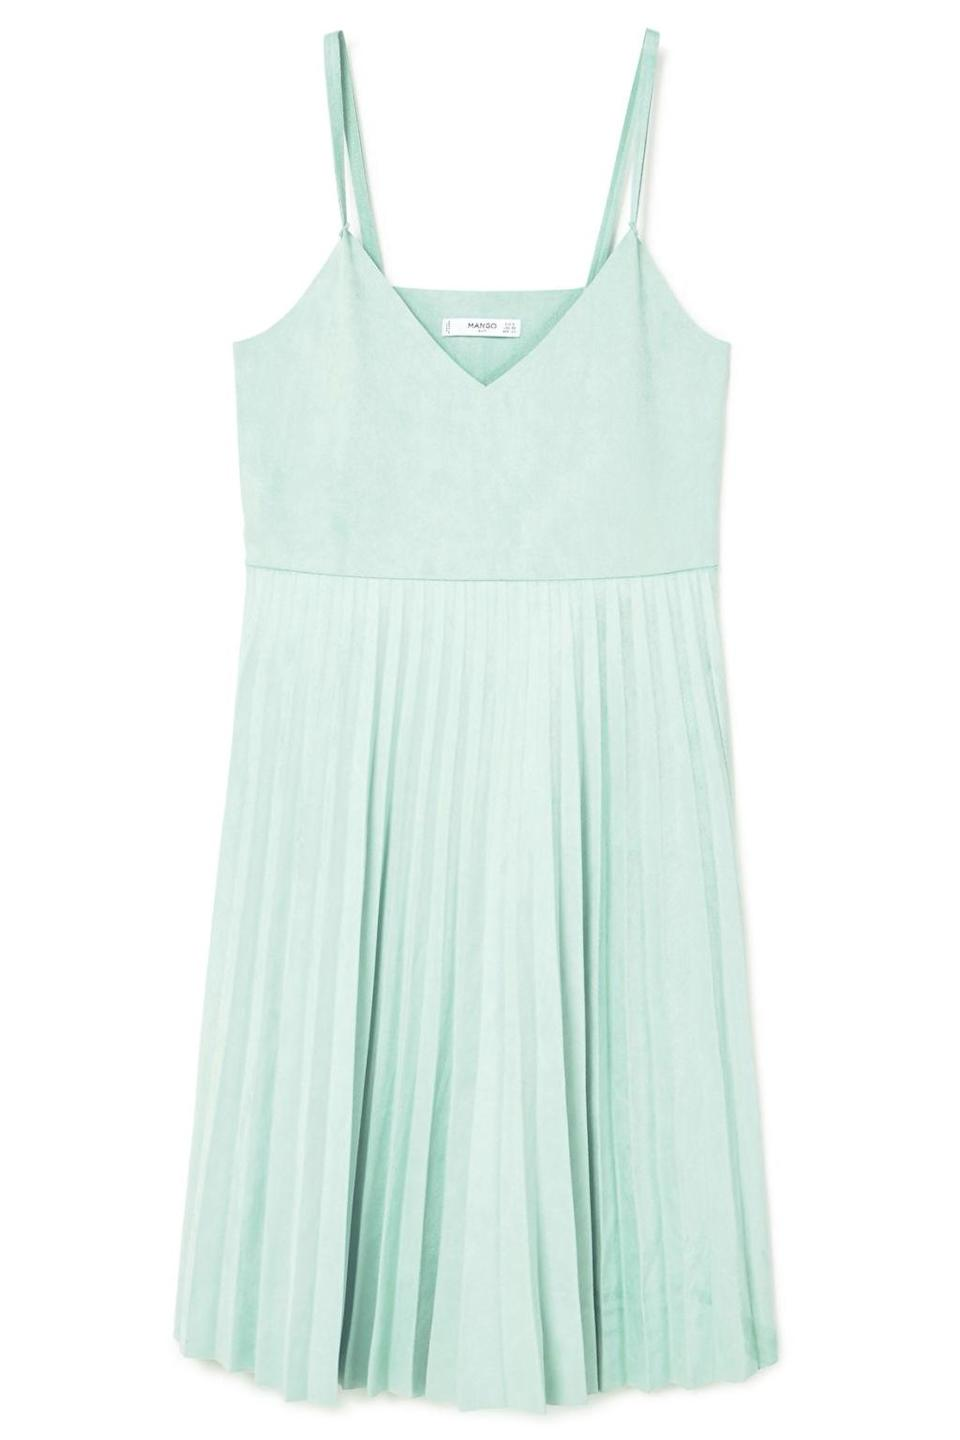 "<p><em>Pleated Dress, MANGO, $80</em></p><p><a href=""http://shop.mango.com/US/p0/women/clothing/dresses/midi/pleated-dress?id=83035539_40&n=1&s=search"" rel=""nofollow noopener"" target=""_blank"" data-ylk=""slk:BUY NOW"" class=""link rapid-noclick-resp"">BUY NOW</a></p>"